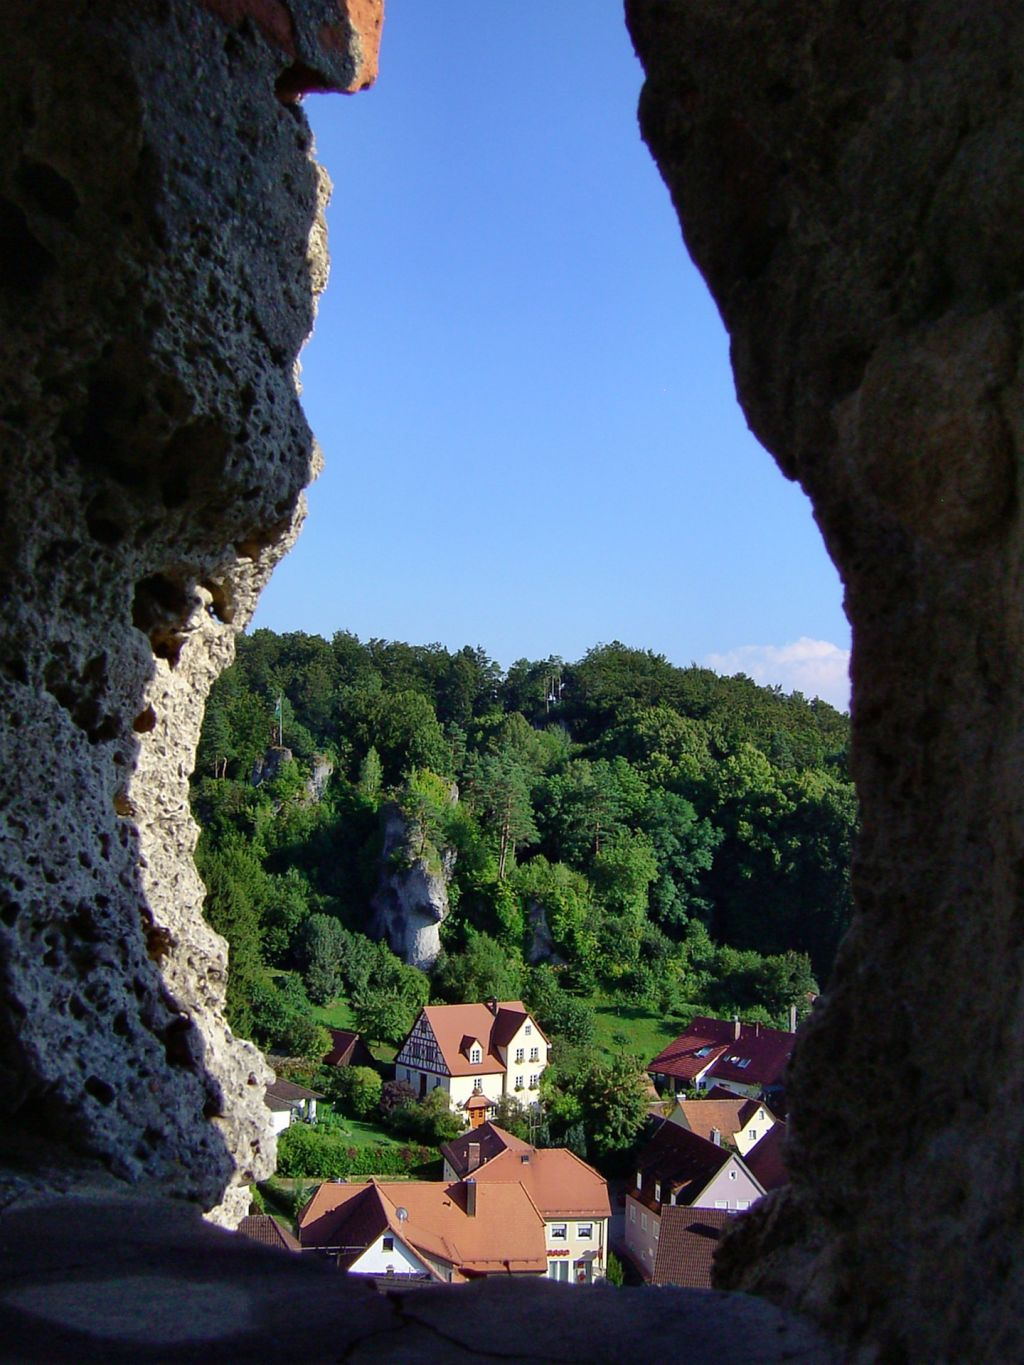 Frankenjura Germany view out of the bottom of a gorge looking over a small town in the trees. jaw-dropping rock climbing gorge